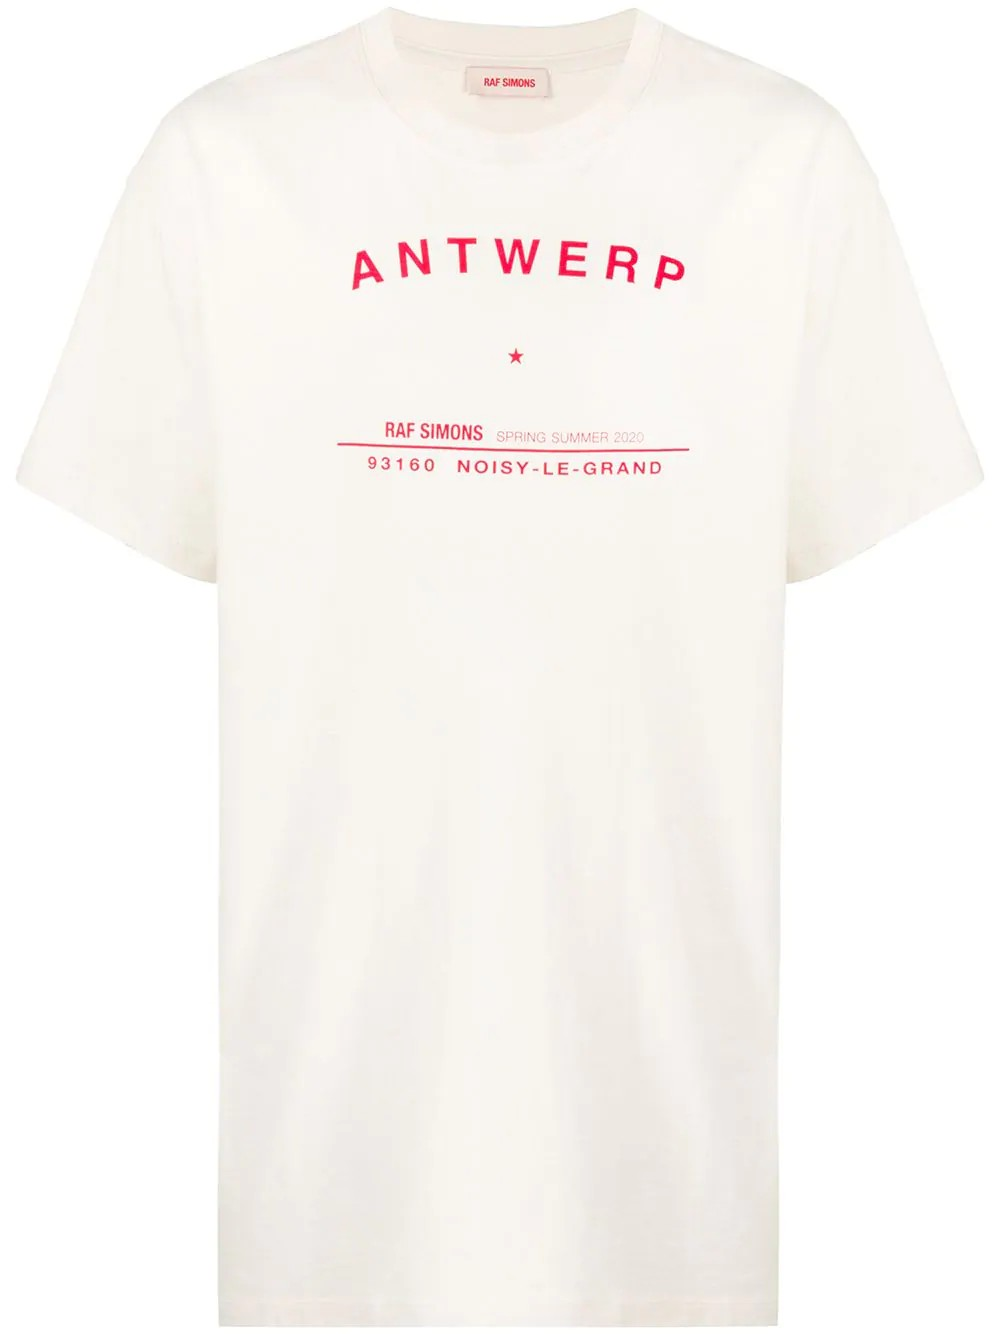 Tour T-shirt Antwerp